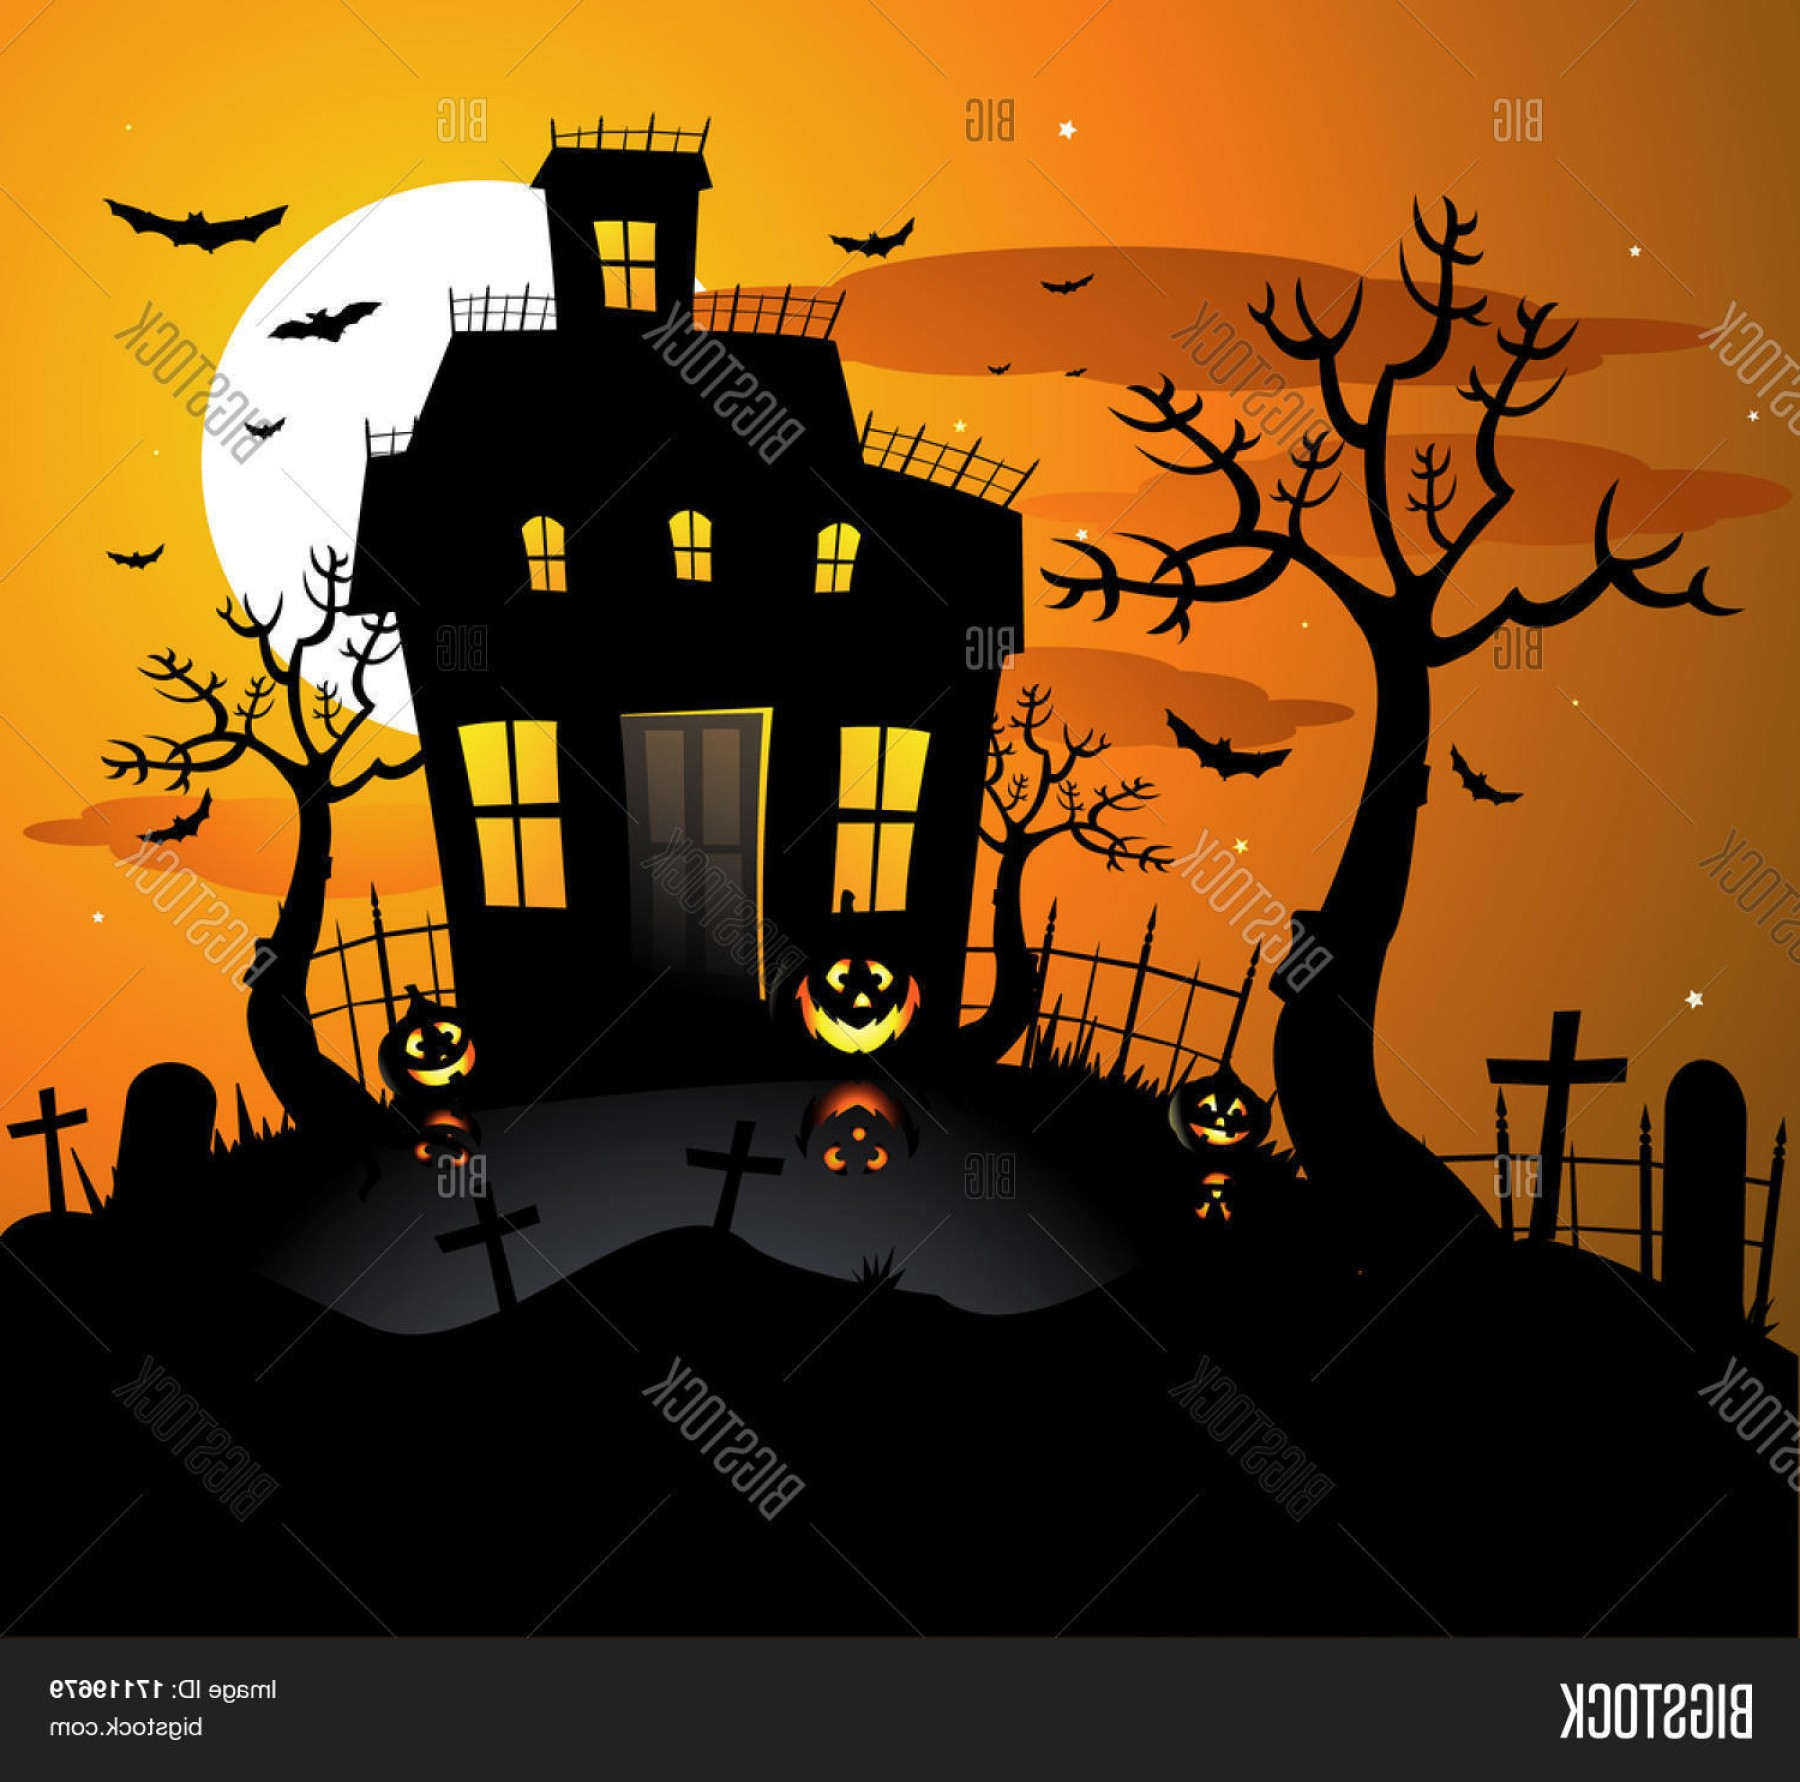 Halloween Haunted House Silhouette Vector: Stock Vector Haunted House Halloween Background